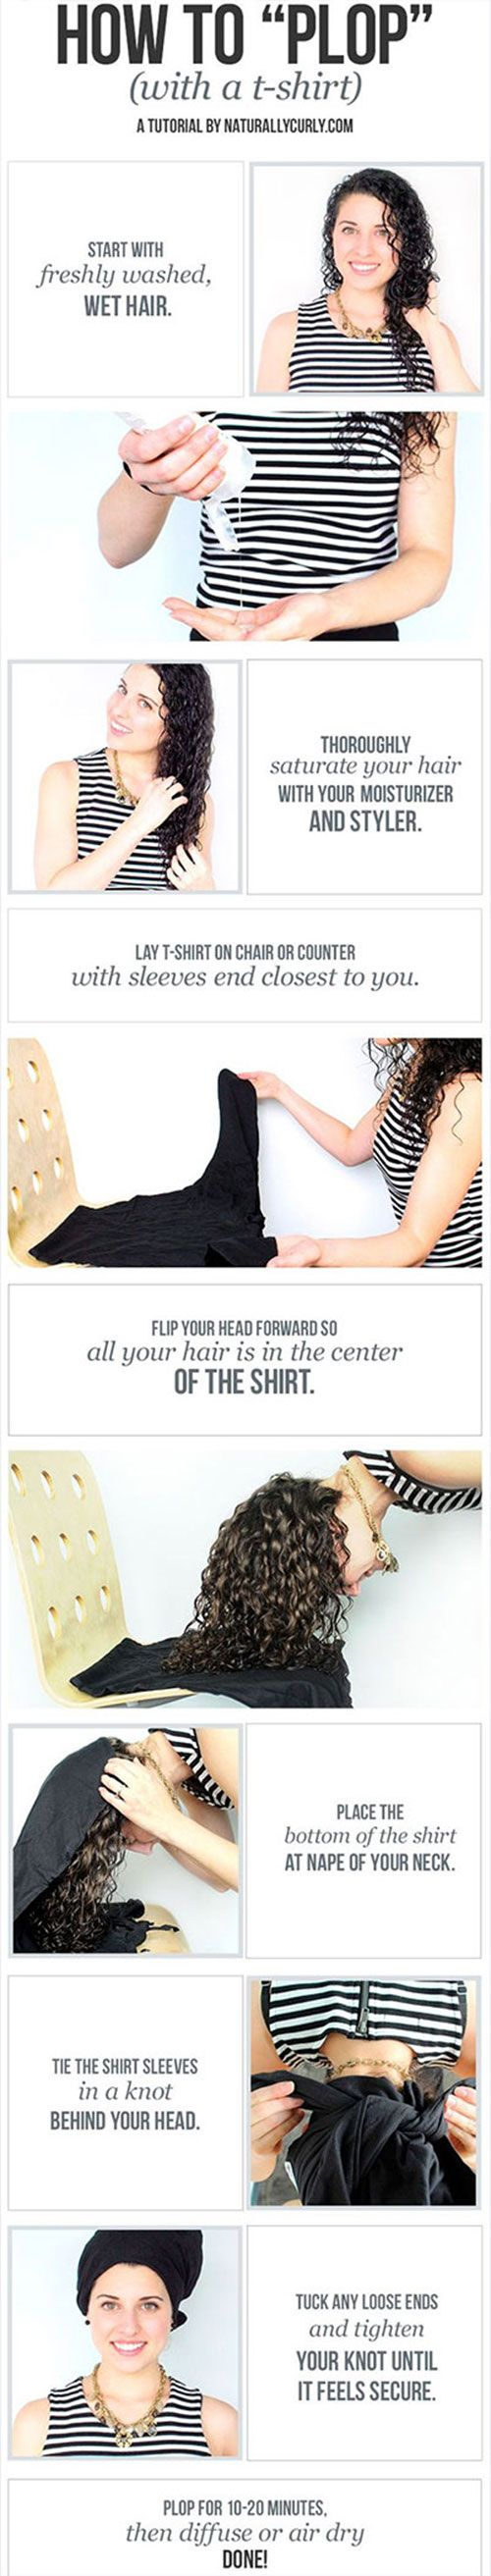 easy tips for girls with frizzy/curly hair